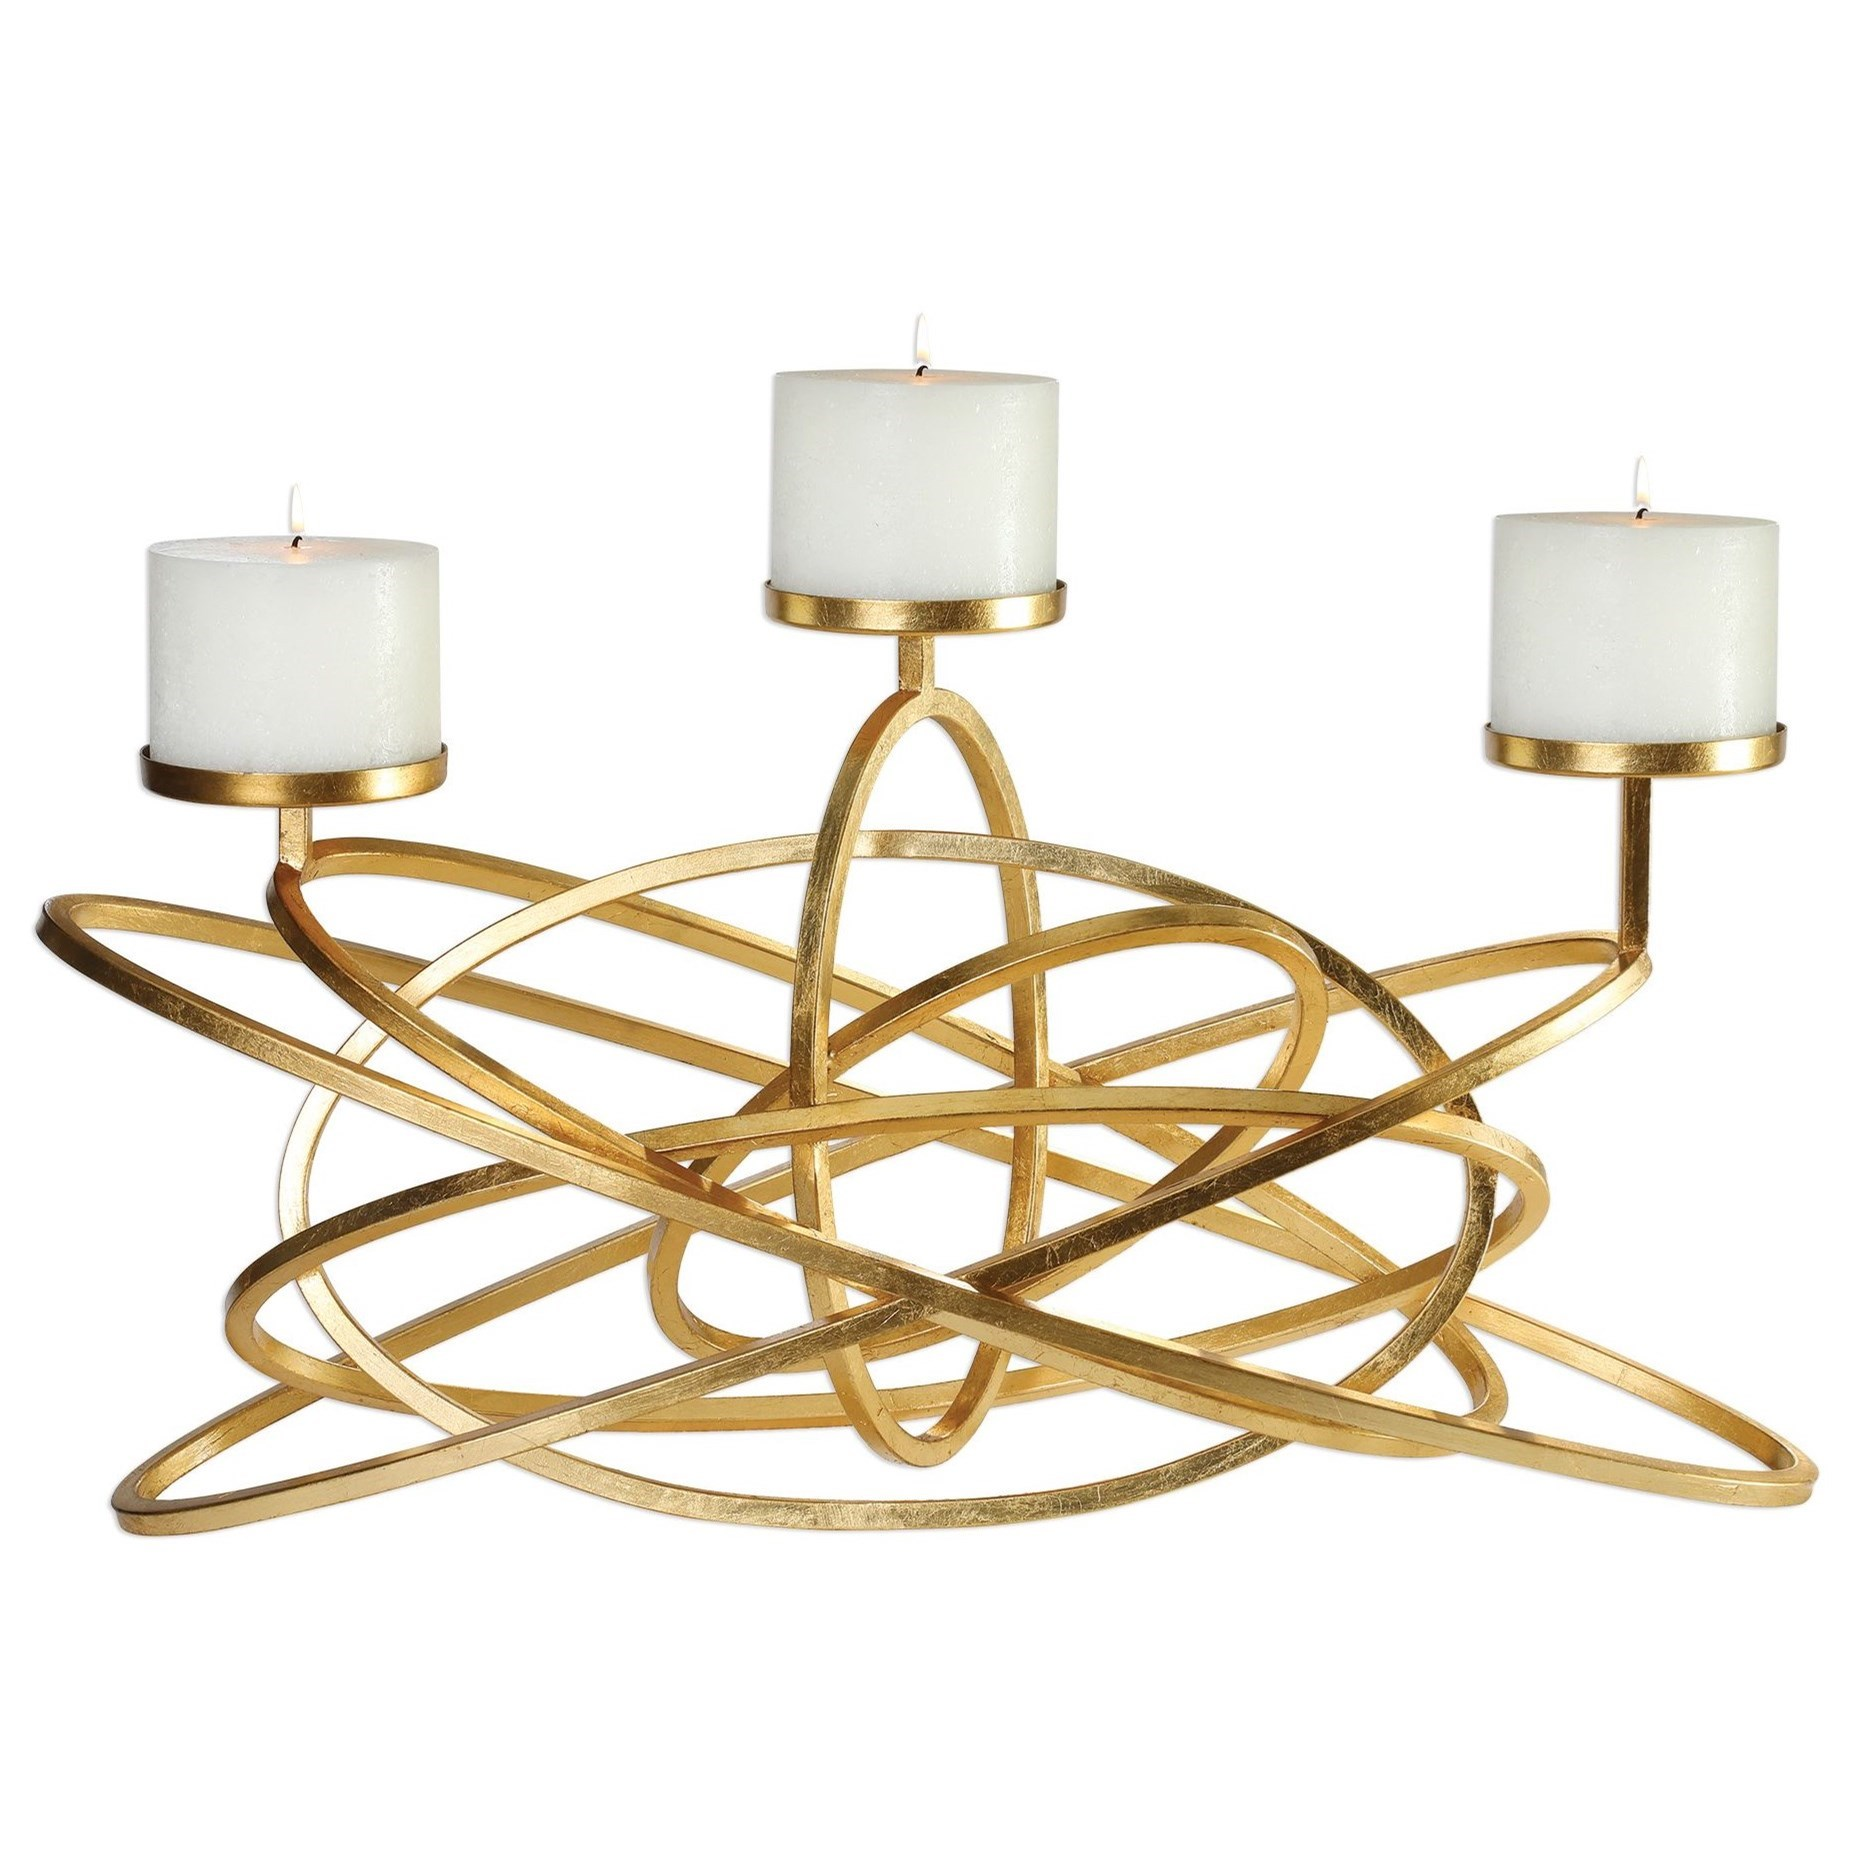 Accessories - Candle Holders Mishka Gold Candelabra by Uttermost at Suburban Furniture